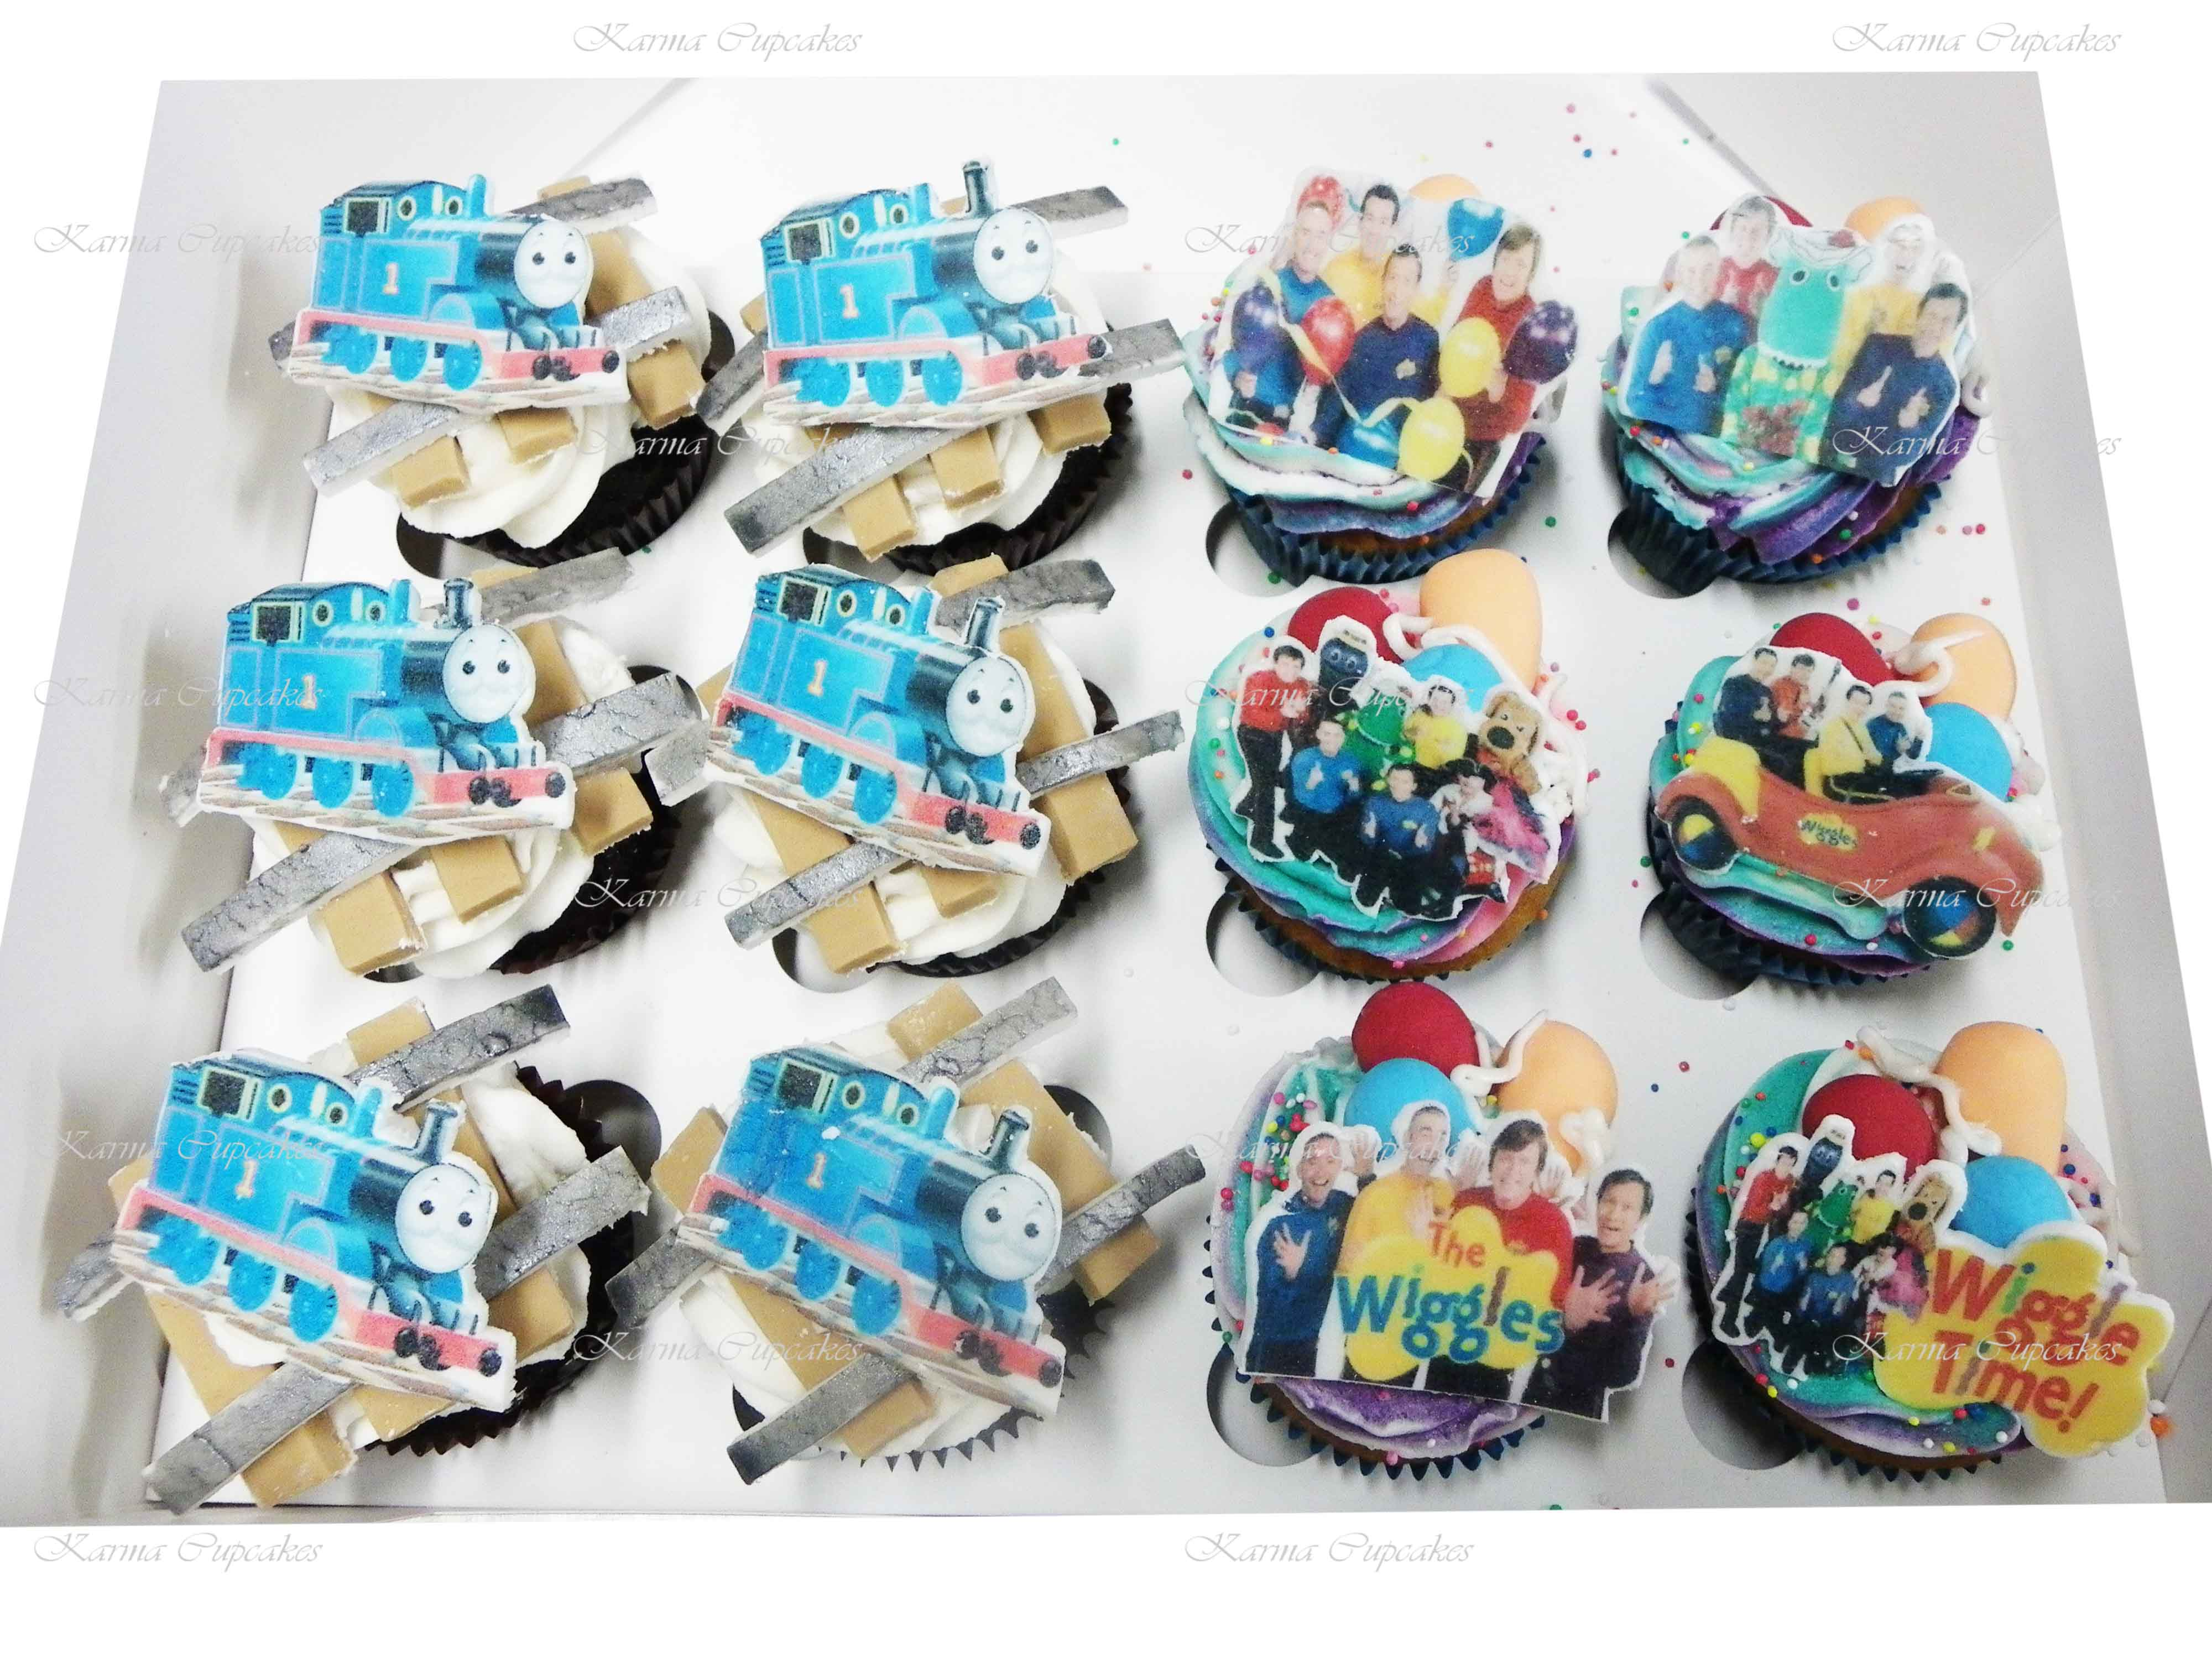 Thomas the Tank Engine and The Wiggles Gourmet Cupcakes